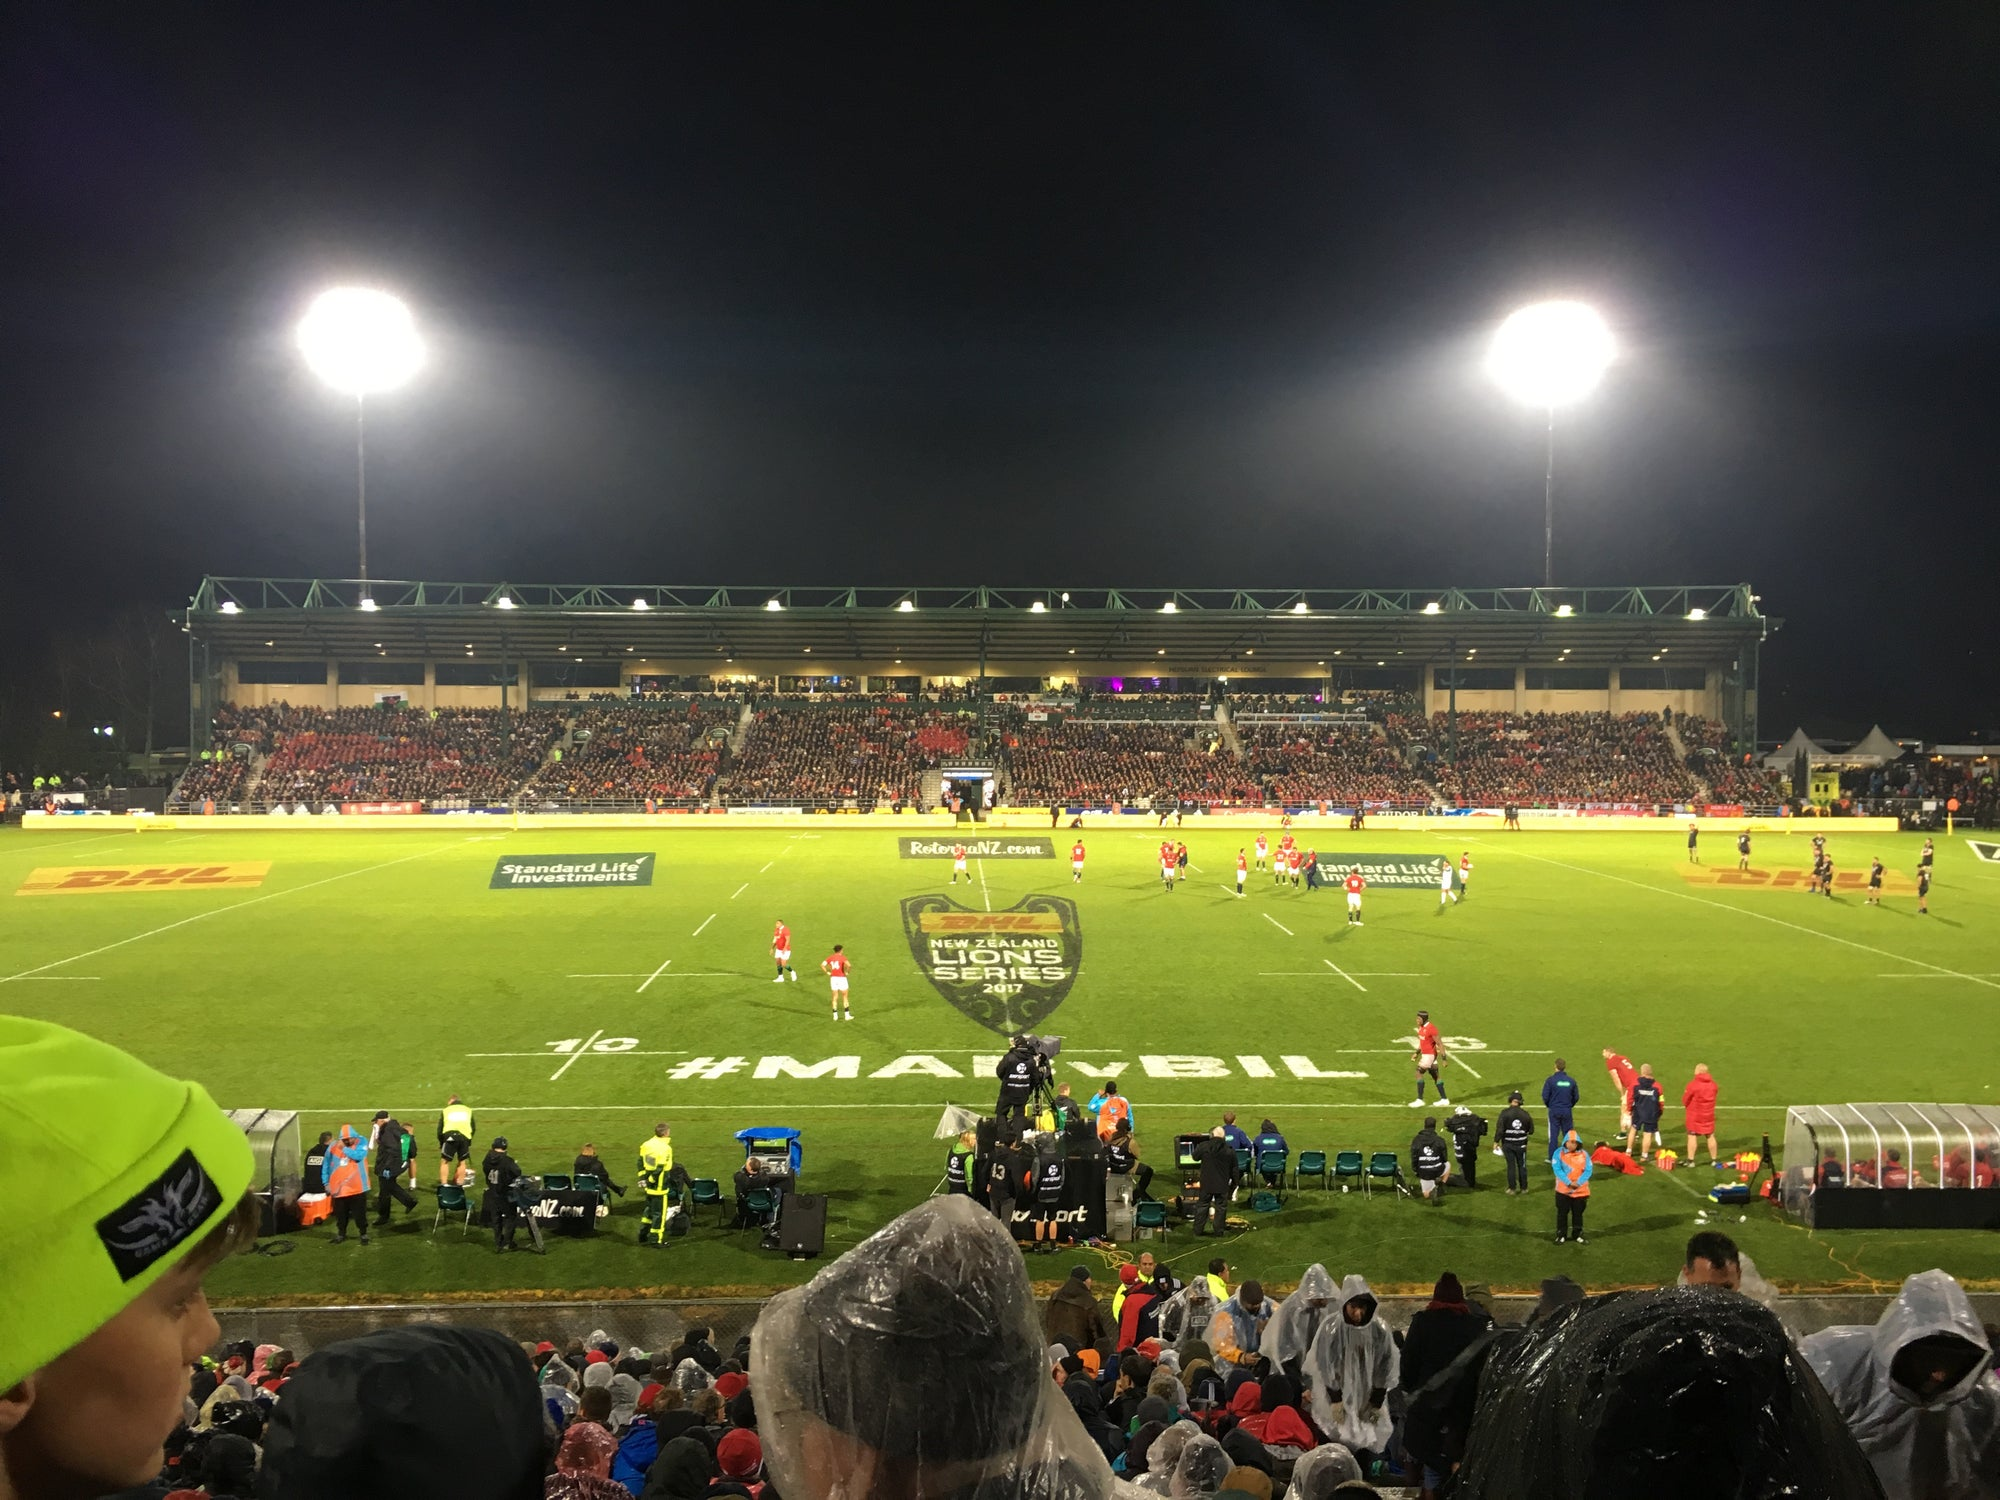 First XV Rugbystuff.com tours New Zealand with the 2017 British & Irish Lions - Part 1